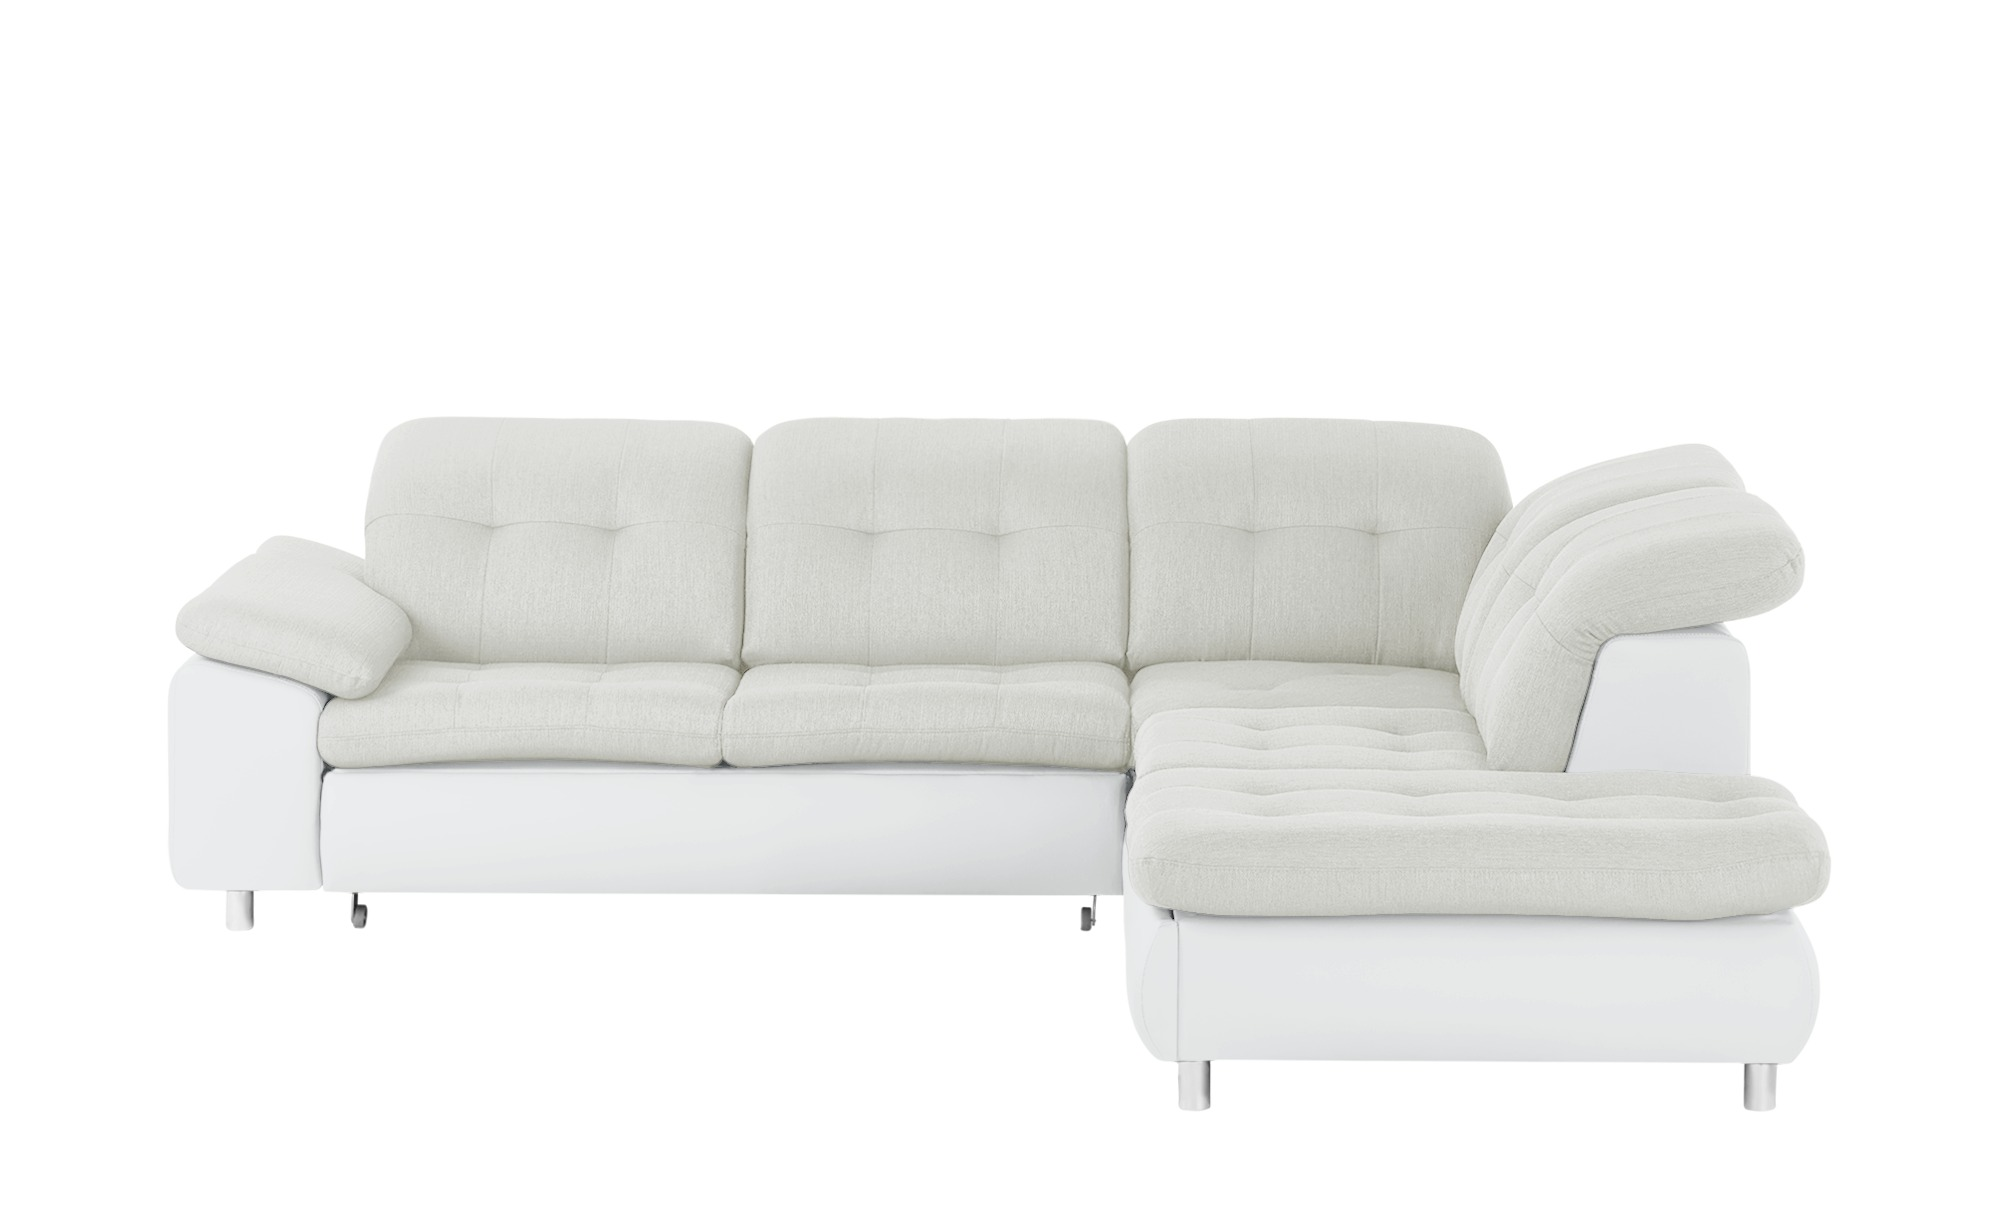 Full Size of Switch Ecksofa Wei Creme Kunstleder Webstoff Sevilla Wollwei Rotes Sofa Relaxfunktion Xxl Grau Boxspring Chesterfield Gebraucht Schlafzimmer Set Weiß Sofa Kunstleder Sofa Weiß